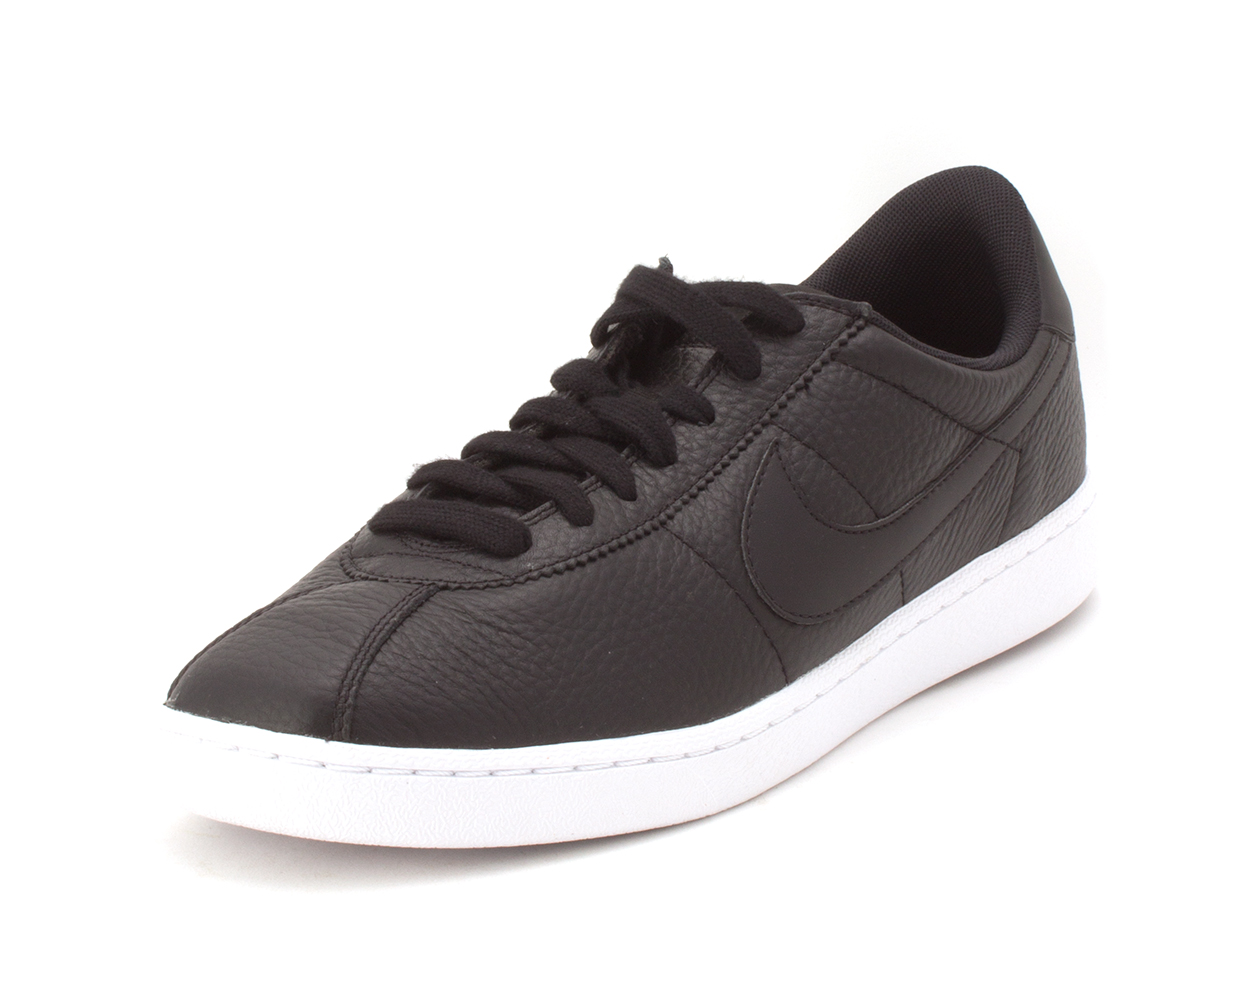 hot sale online 622b7 40763 Nike Mens Bruin Leather Low Top Lace Up Running Sneaker